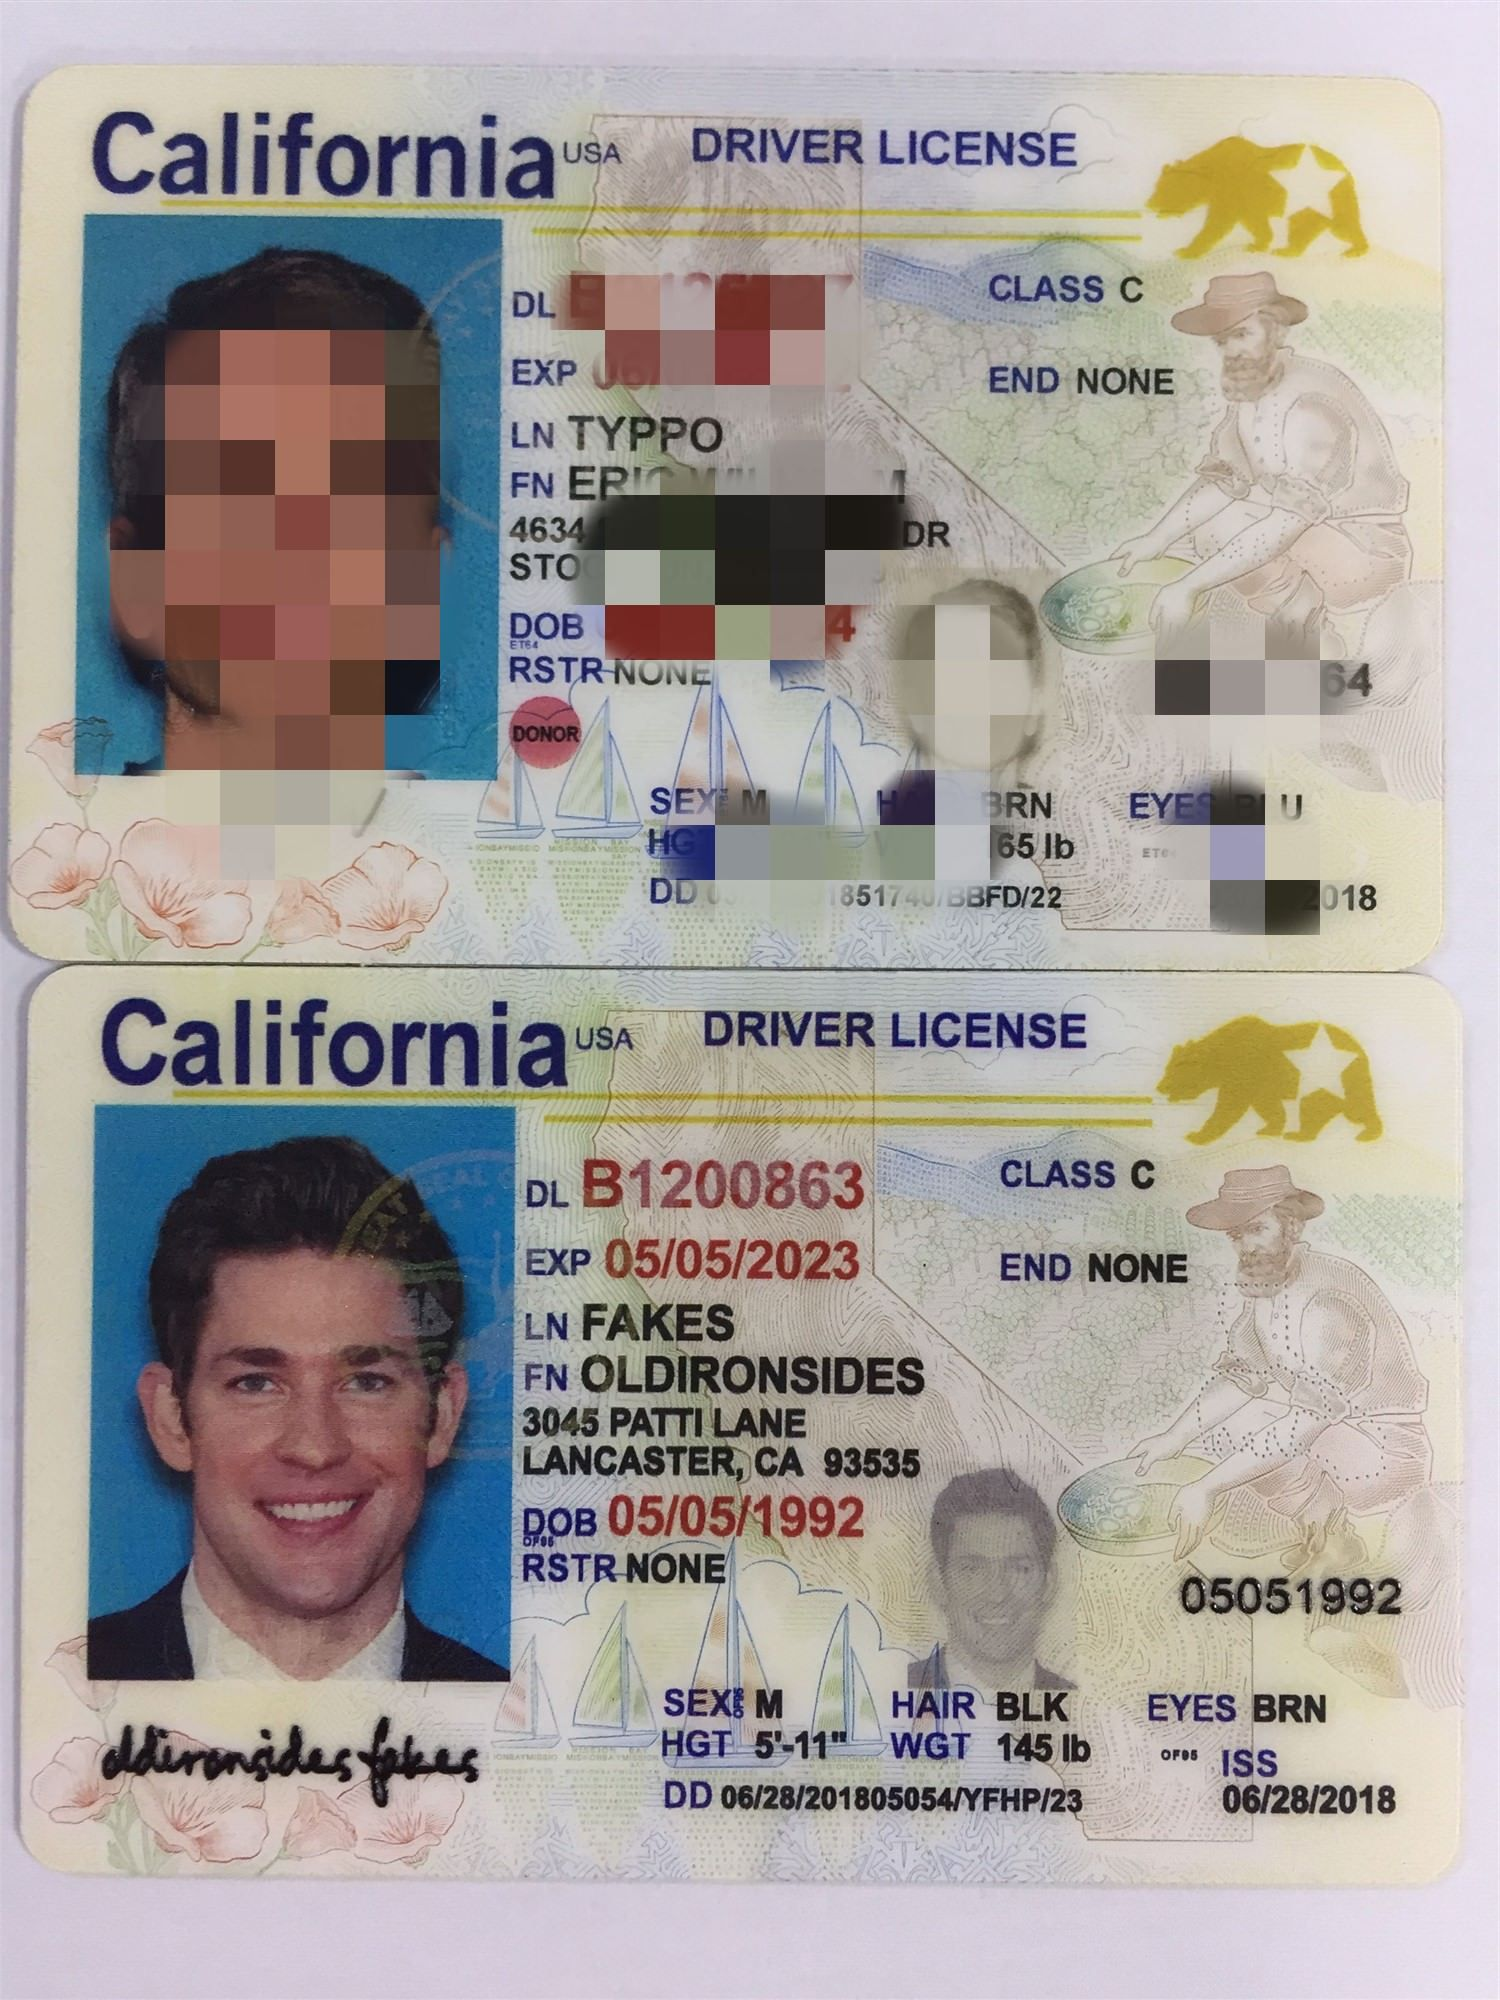 new New Id Real Registered Driver Drivers fake -buy Legally I… In Real Passports California Id Ca 2019… License And Fake